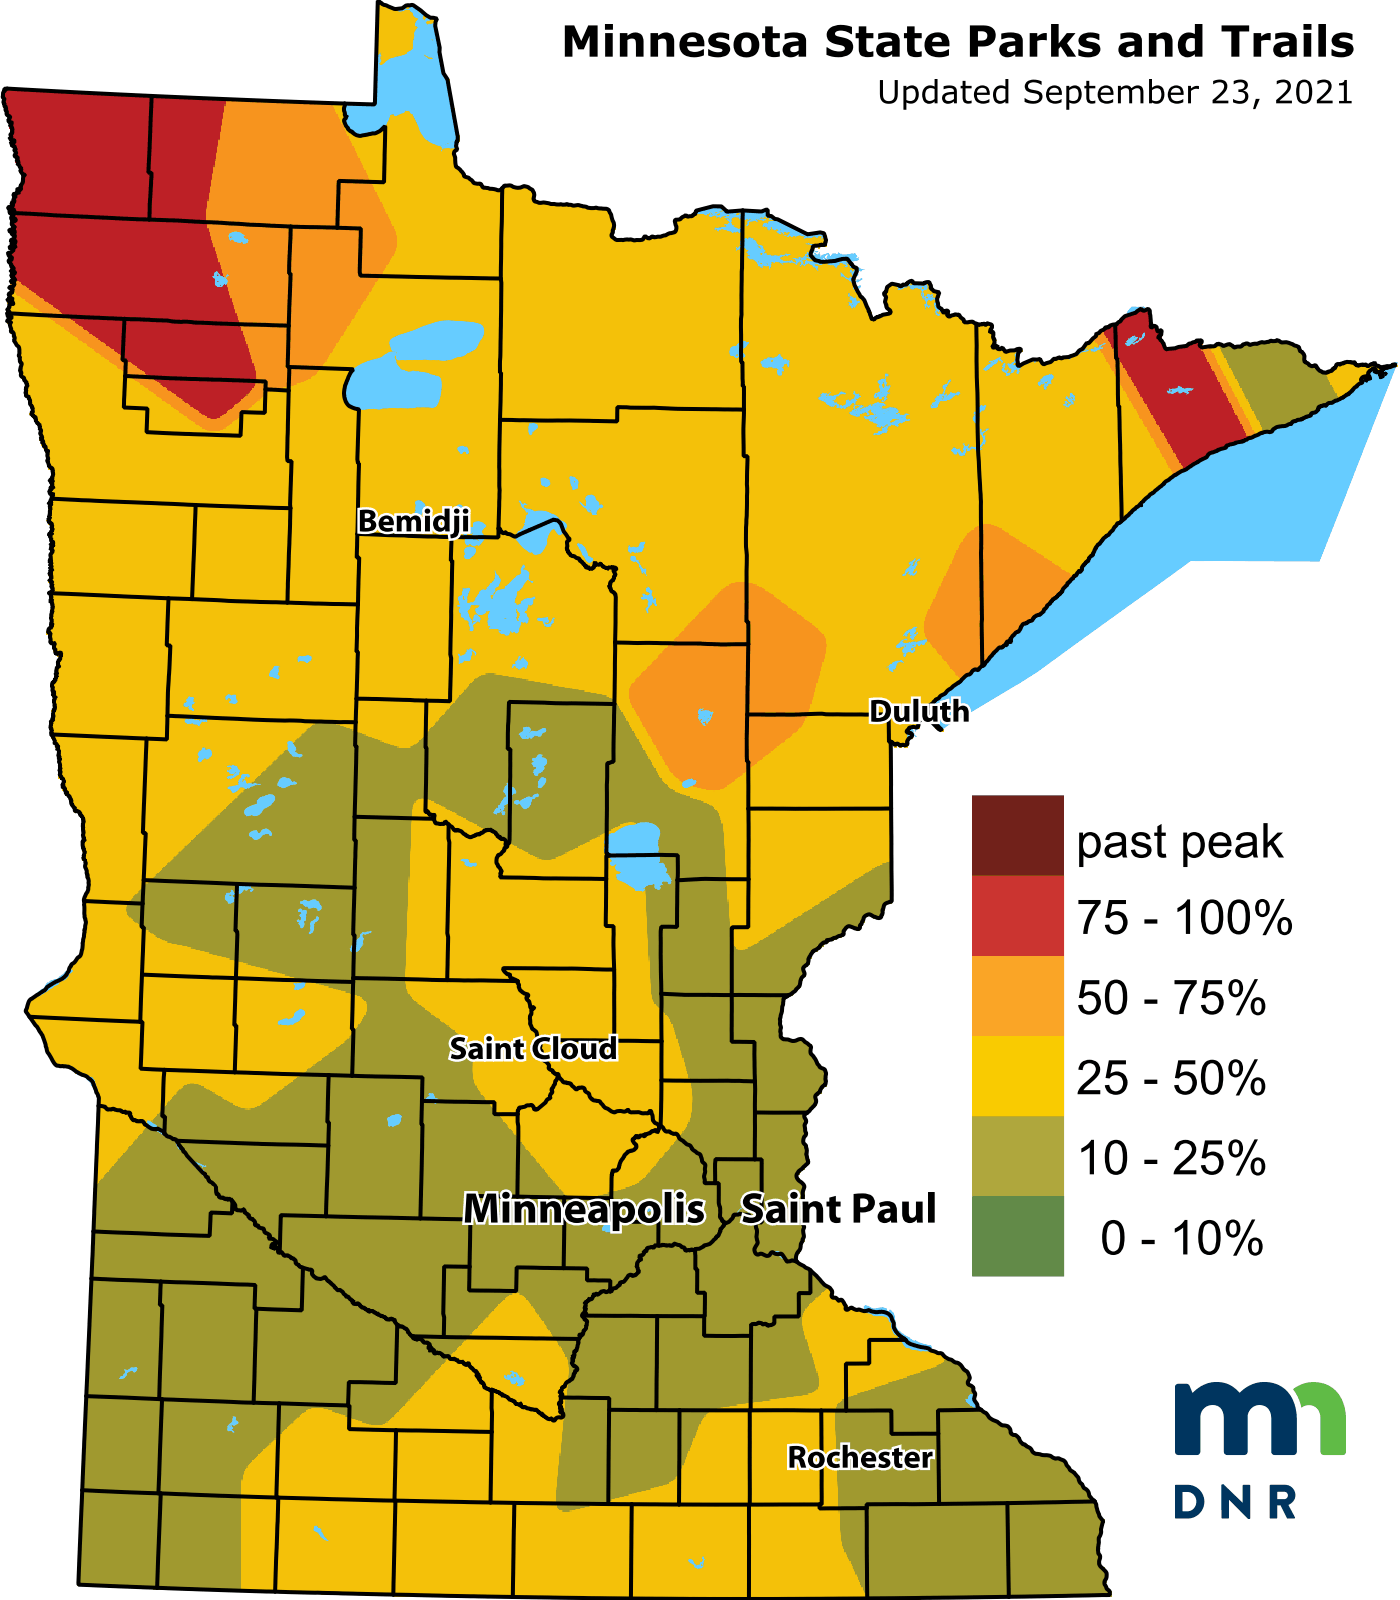 map of the state of Minnesota indicates fall color areas